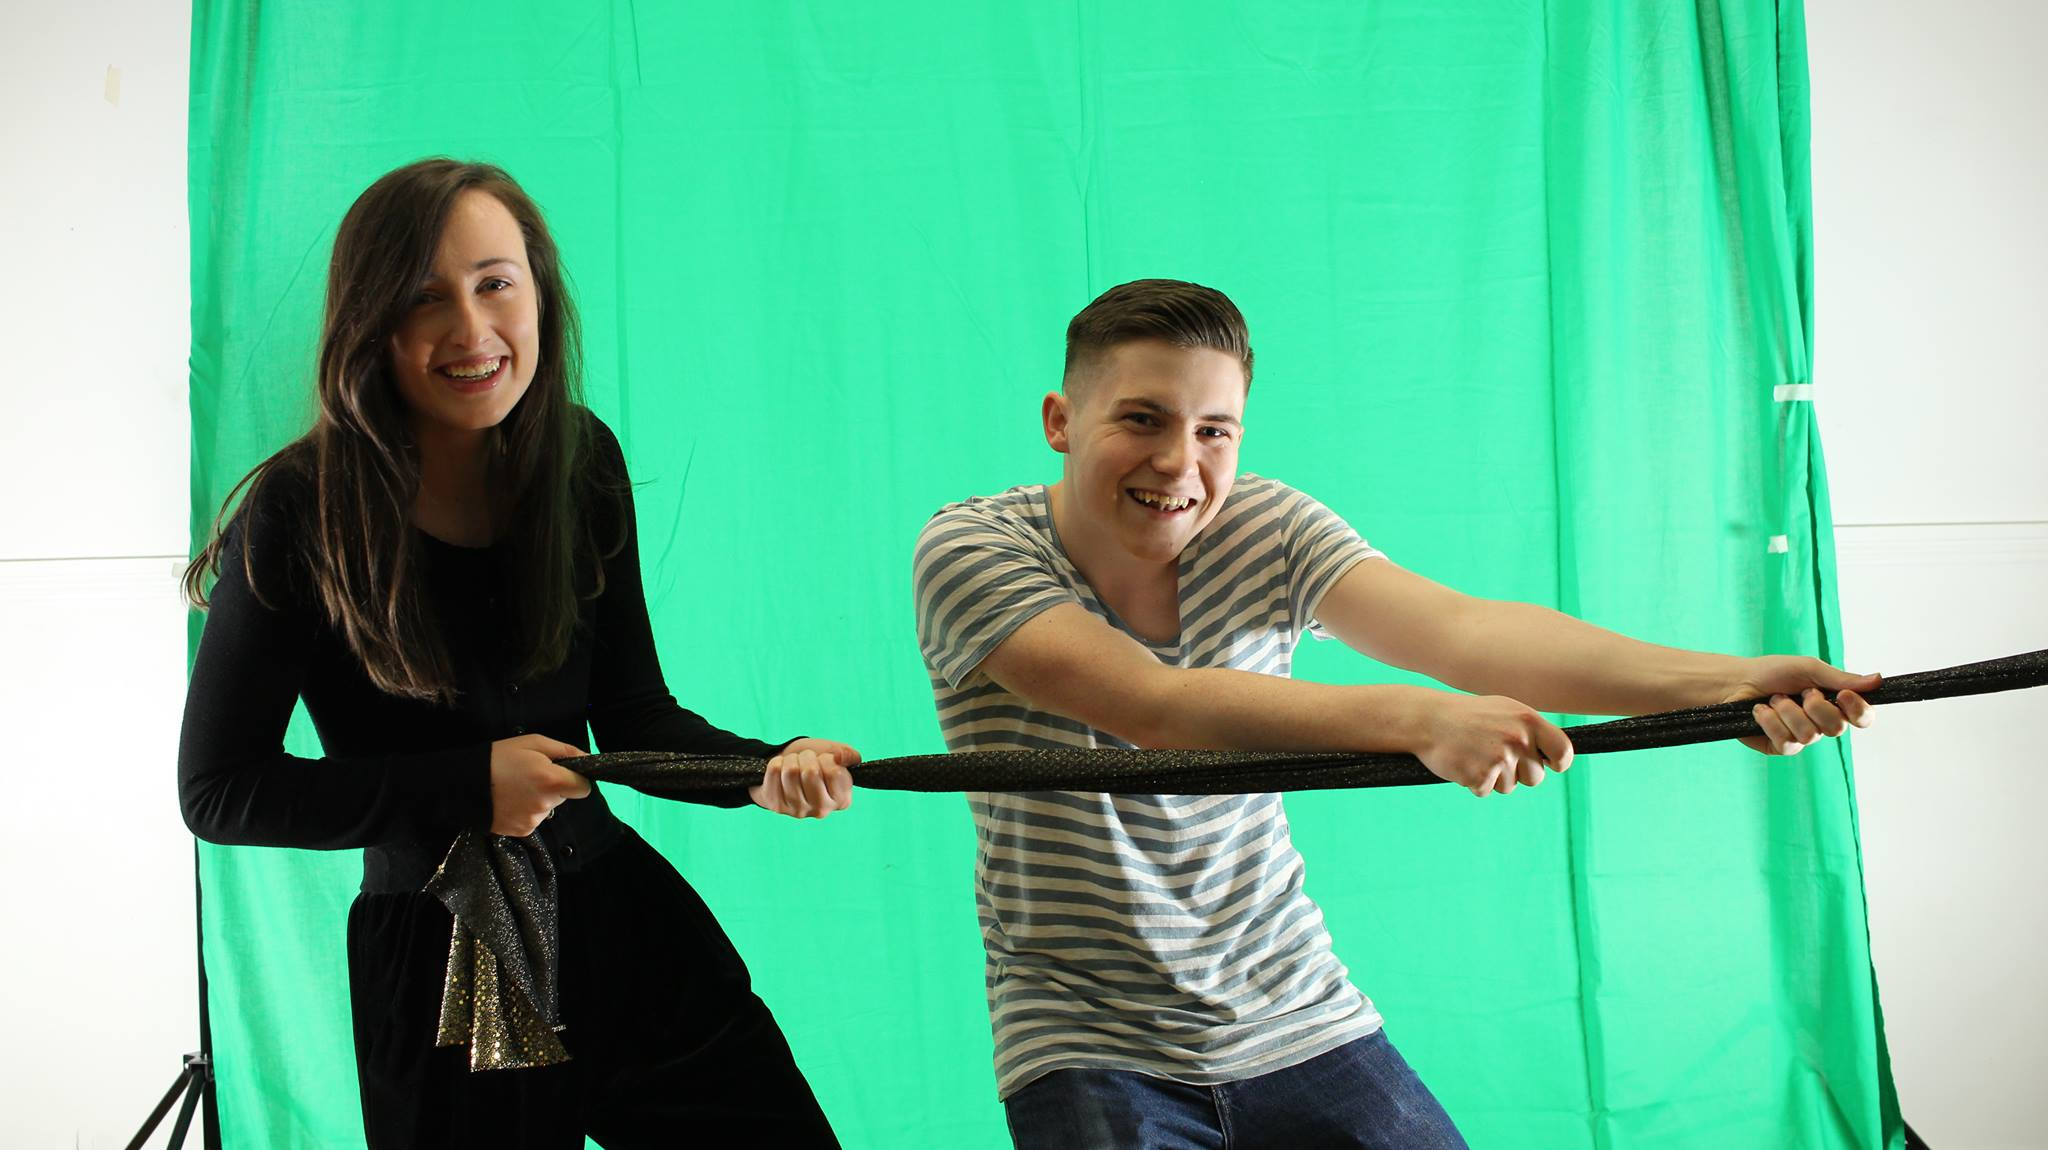 Limerick Youth Theatre Pride of Place Awards Nomination